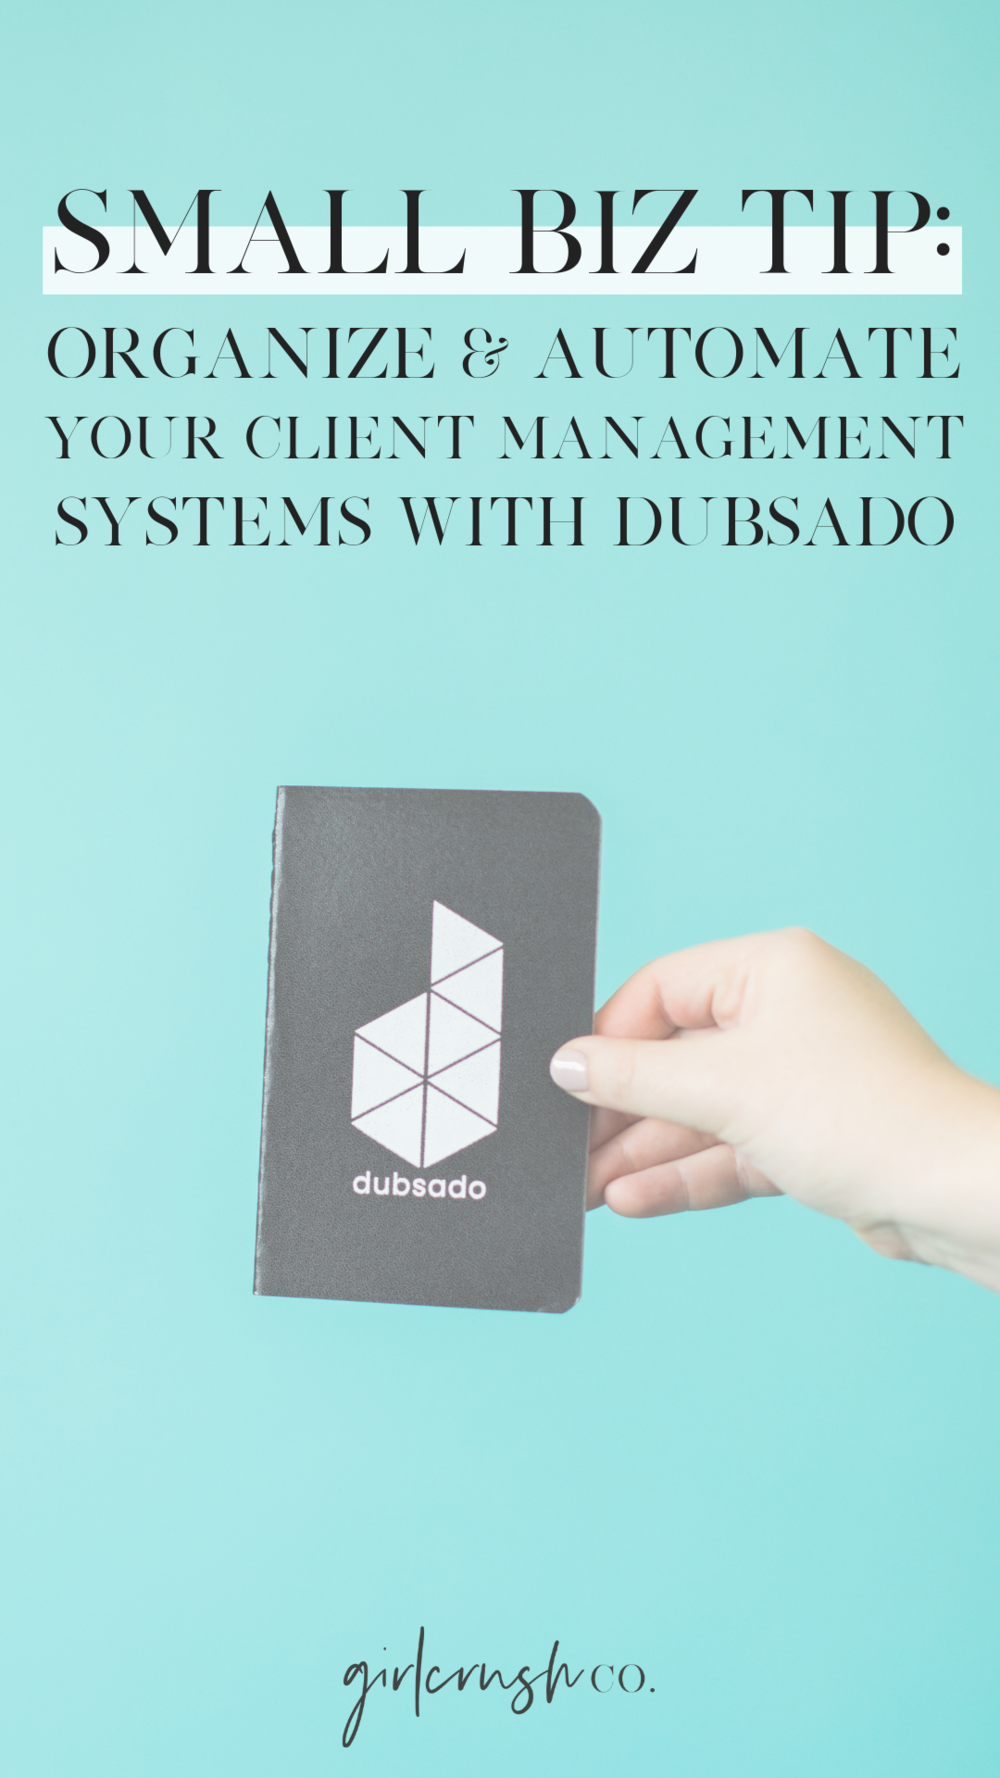 organize and automate your small business with dubsado